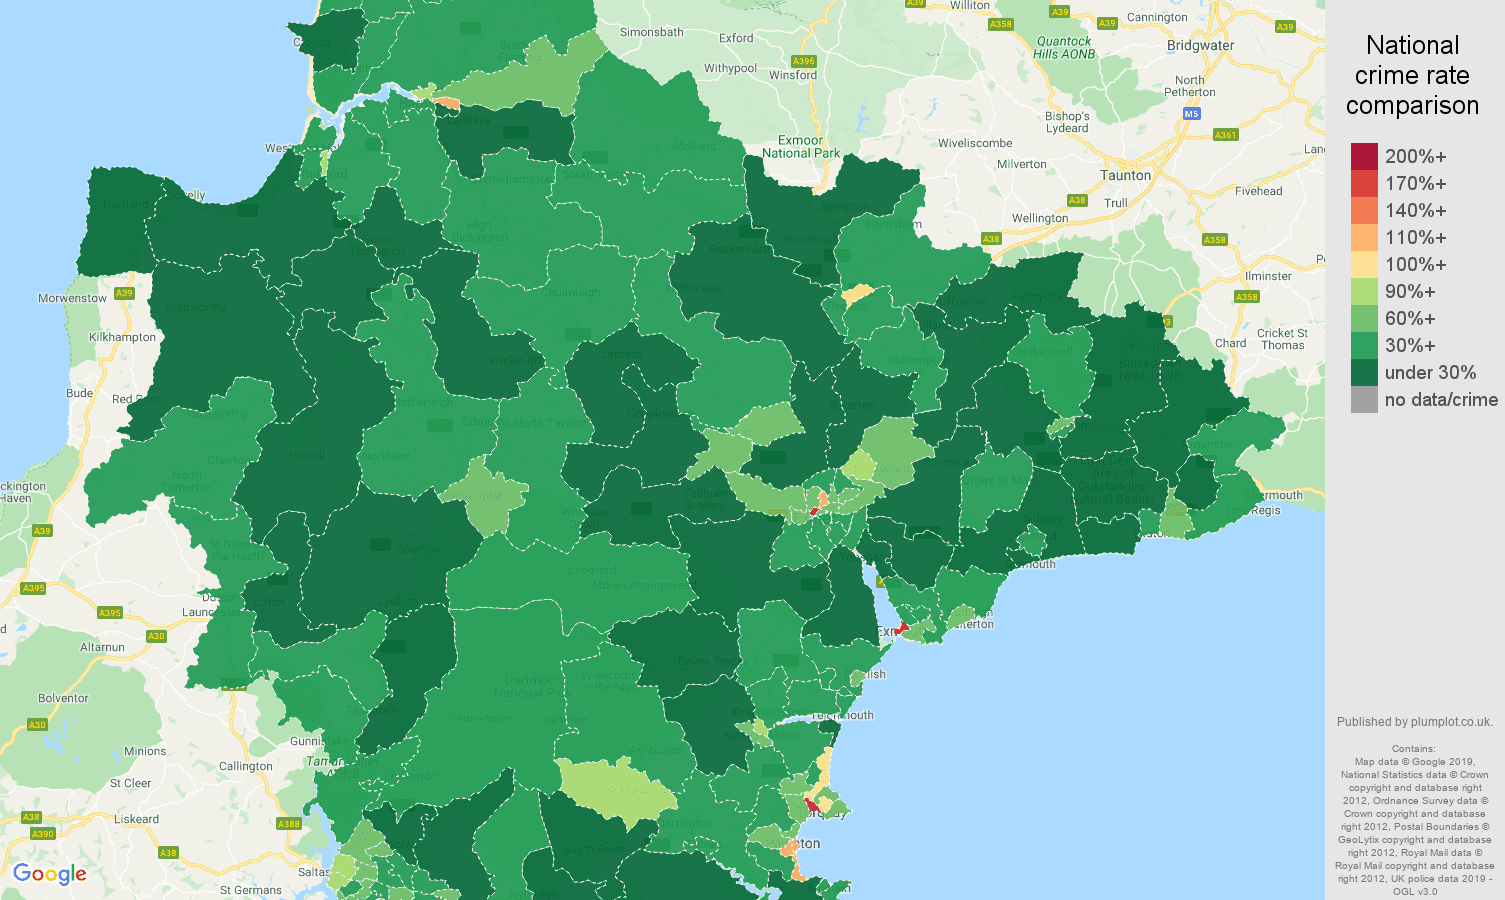 Devon public order crime rate comparison map